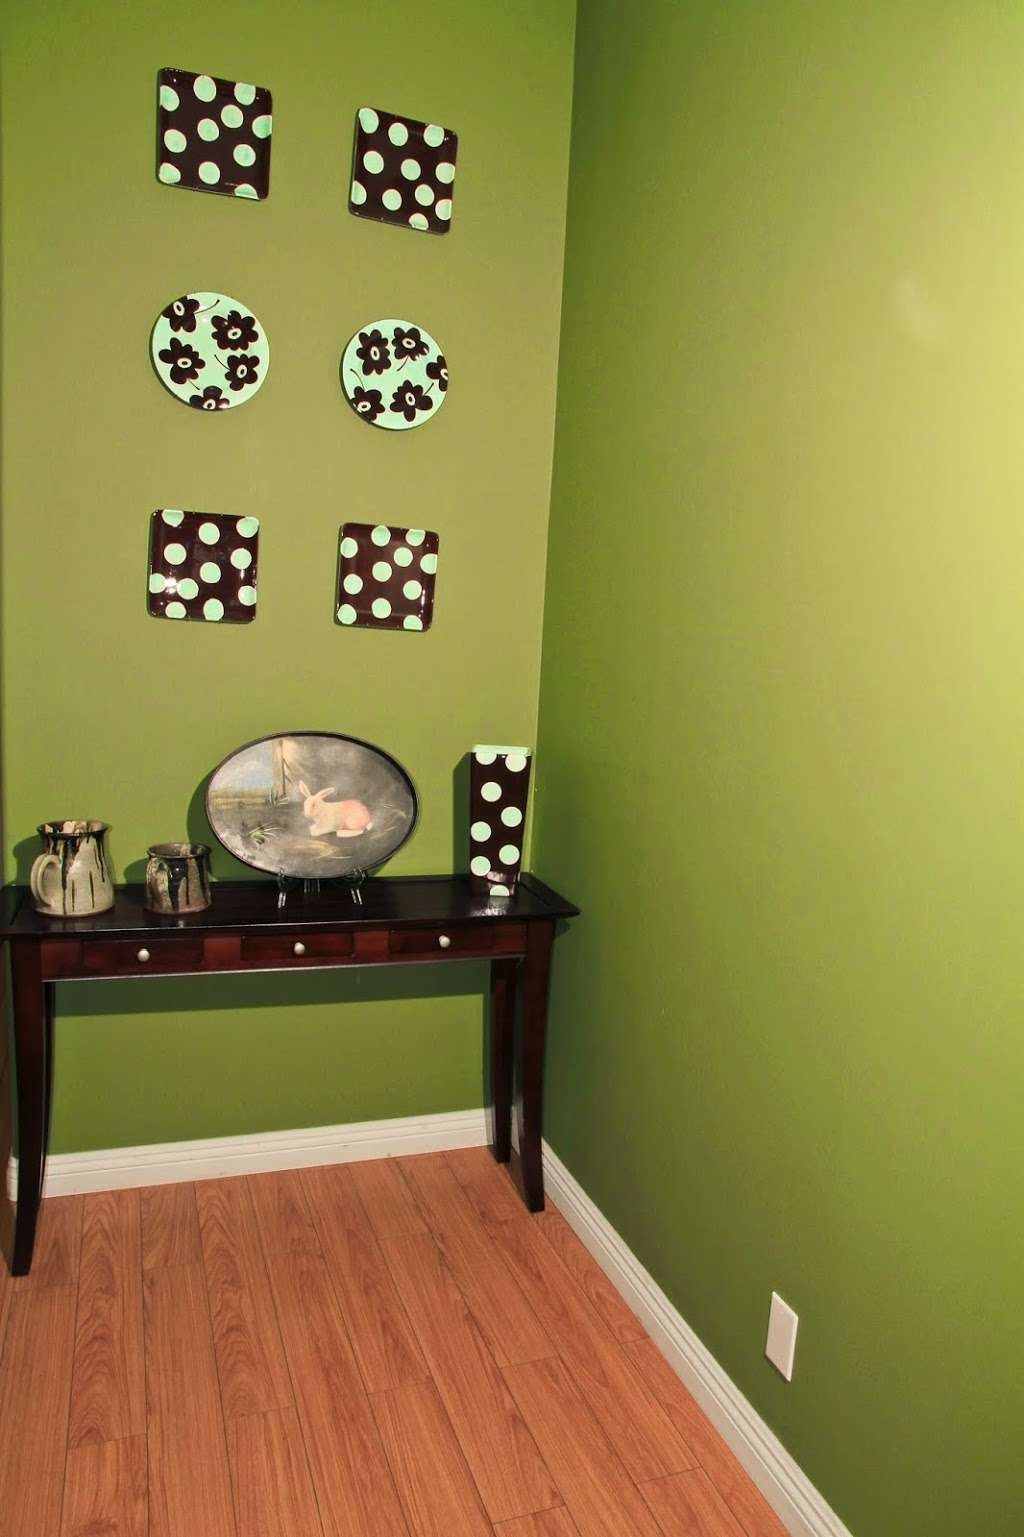 GT Family Dentistry - dentist  | Photo 7 of 9 | Address: 6334 Lincoln Ave, Cypress, CA 90630, USA | Phone: (714) 527-1801